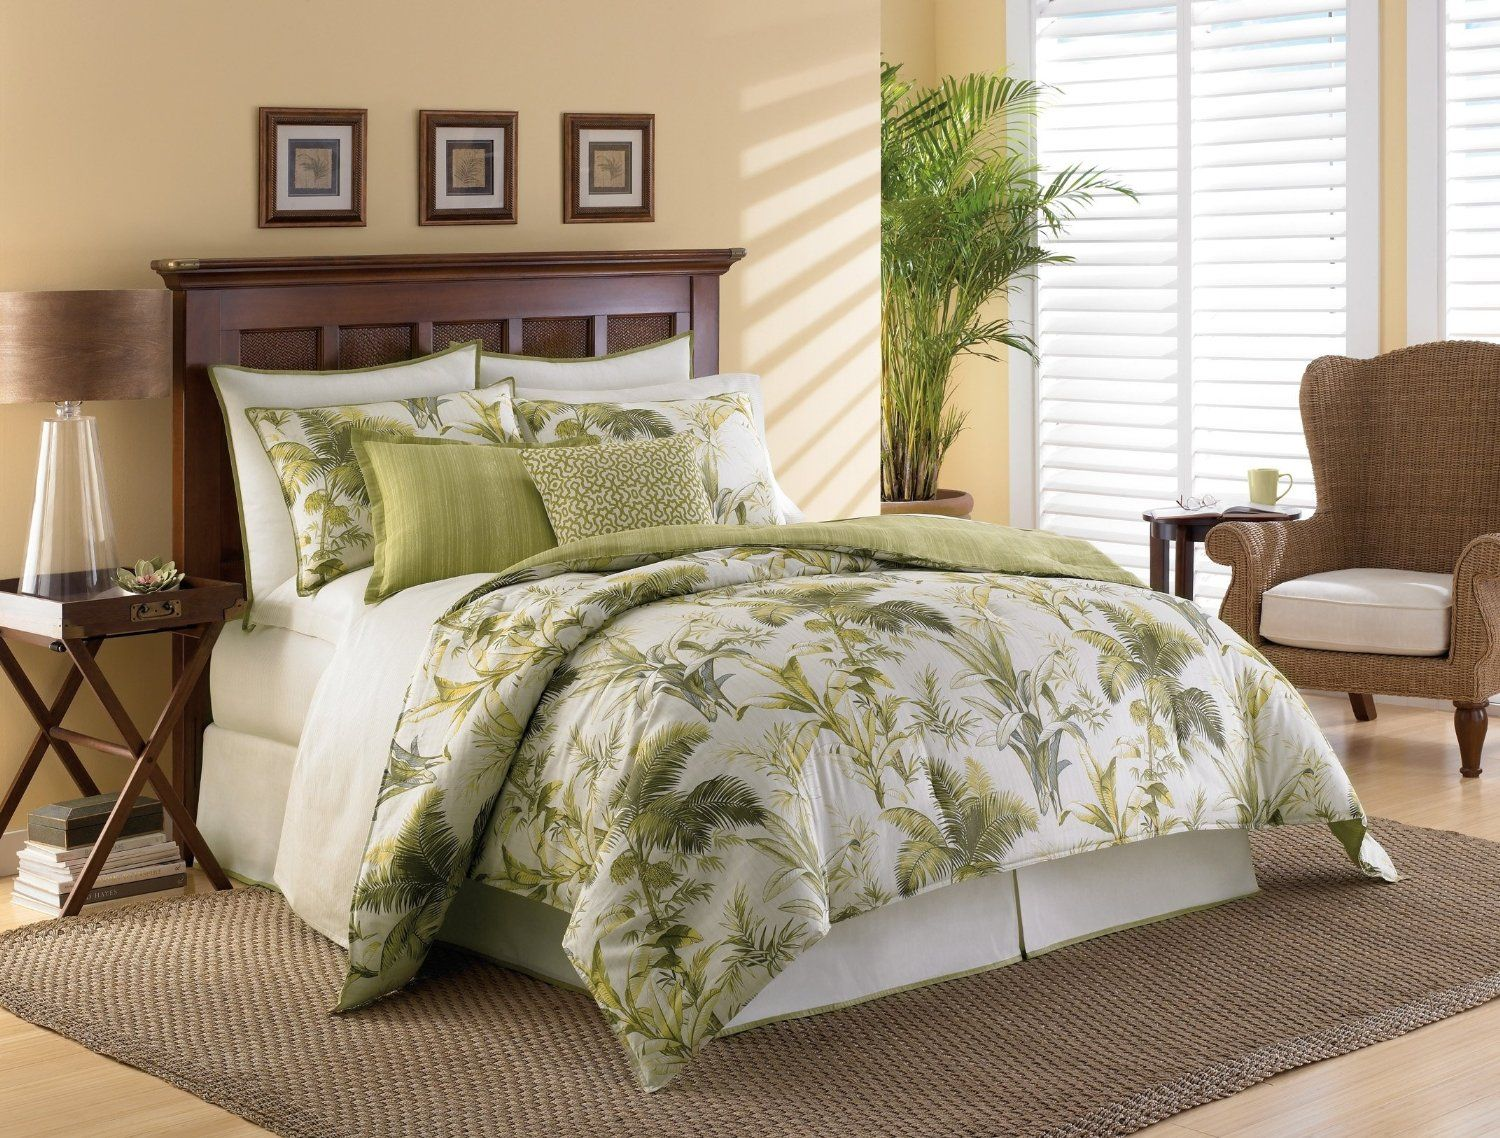 tommy bahama island botanical comforter set overstock shopping great deals on tommy bahama comforter sets - Tommy Bahama Bedroom Decorating Ideas